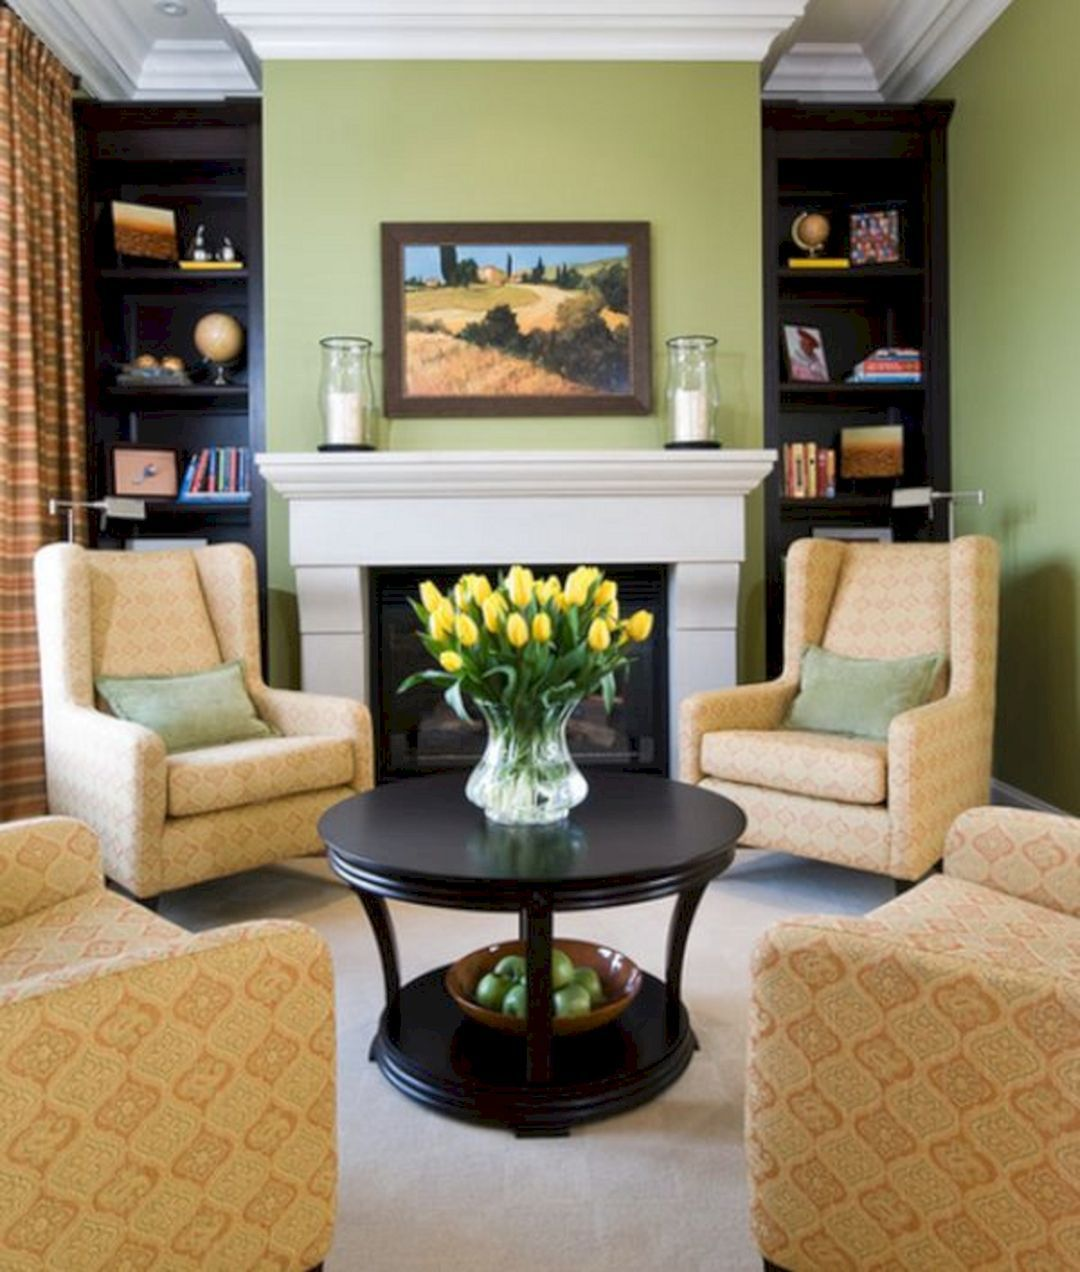 25 awesome fireplace seating ideas for family room design on family picture wall ideas for living room furniture arrangements id=41018